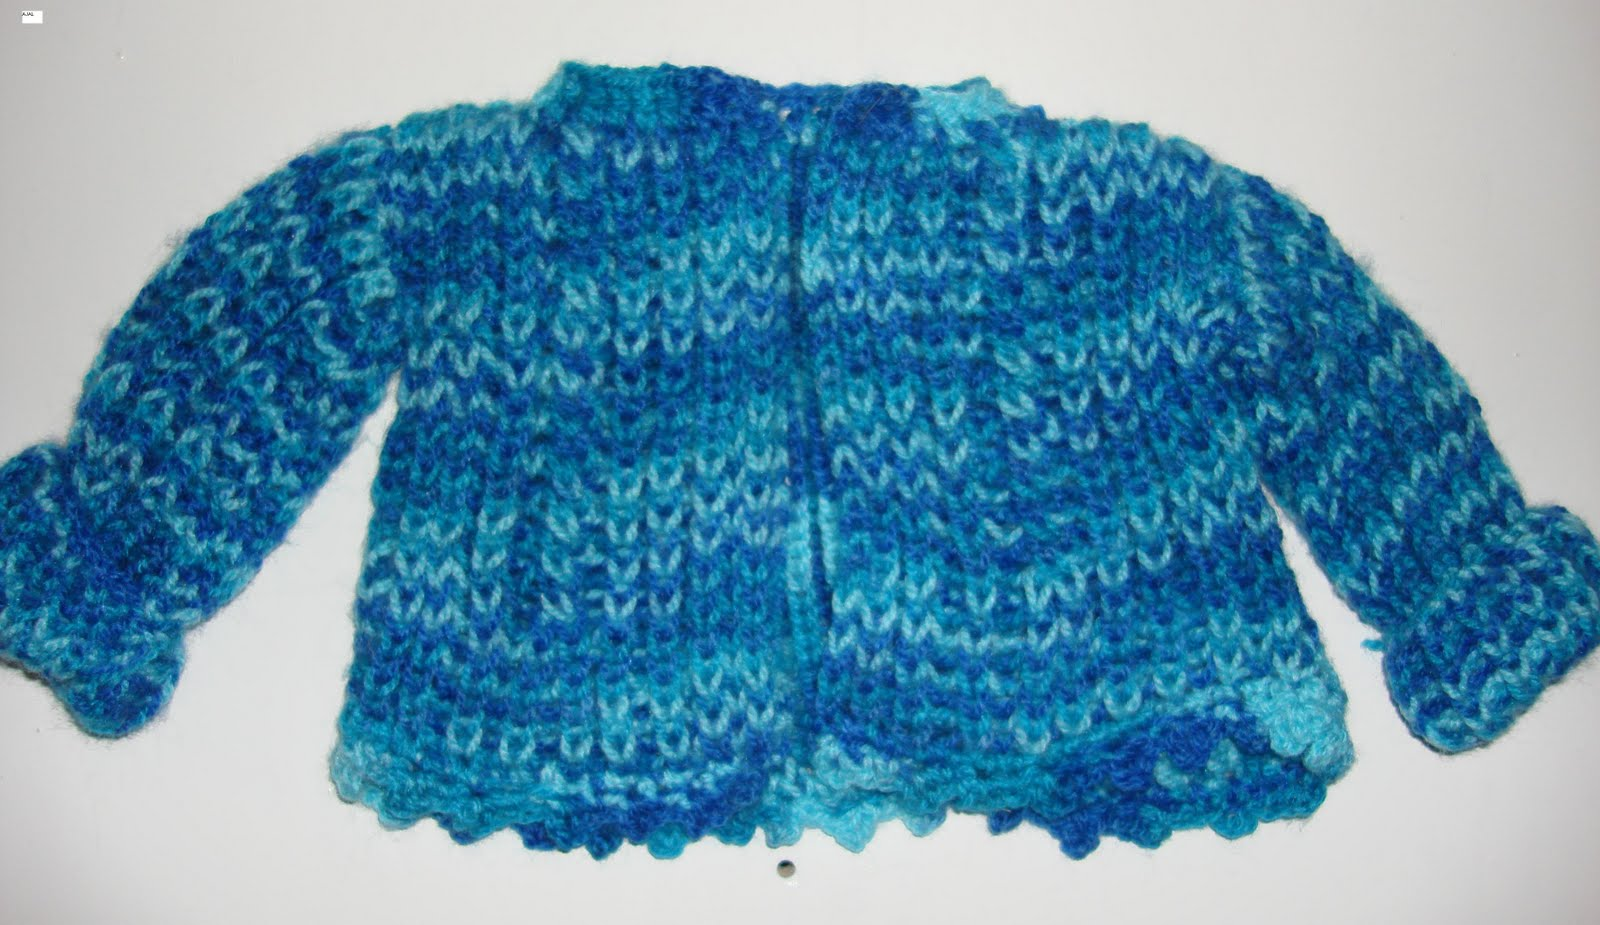 Loom Knitting Baby Patterns : LOOM KNITTING AND SOMETHING ELSE: BABY SWEATER WITH BRIOCHE STITCH